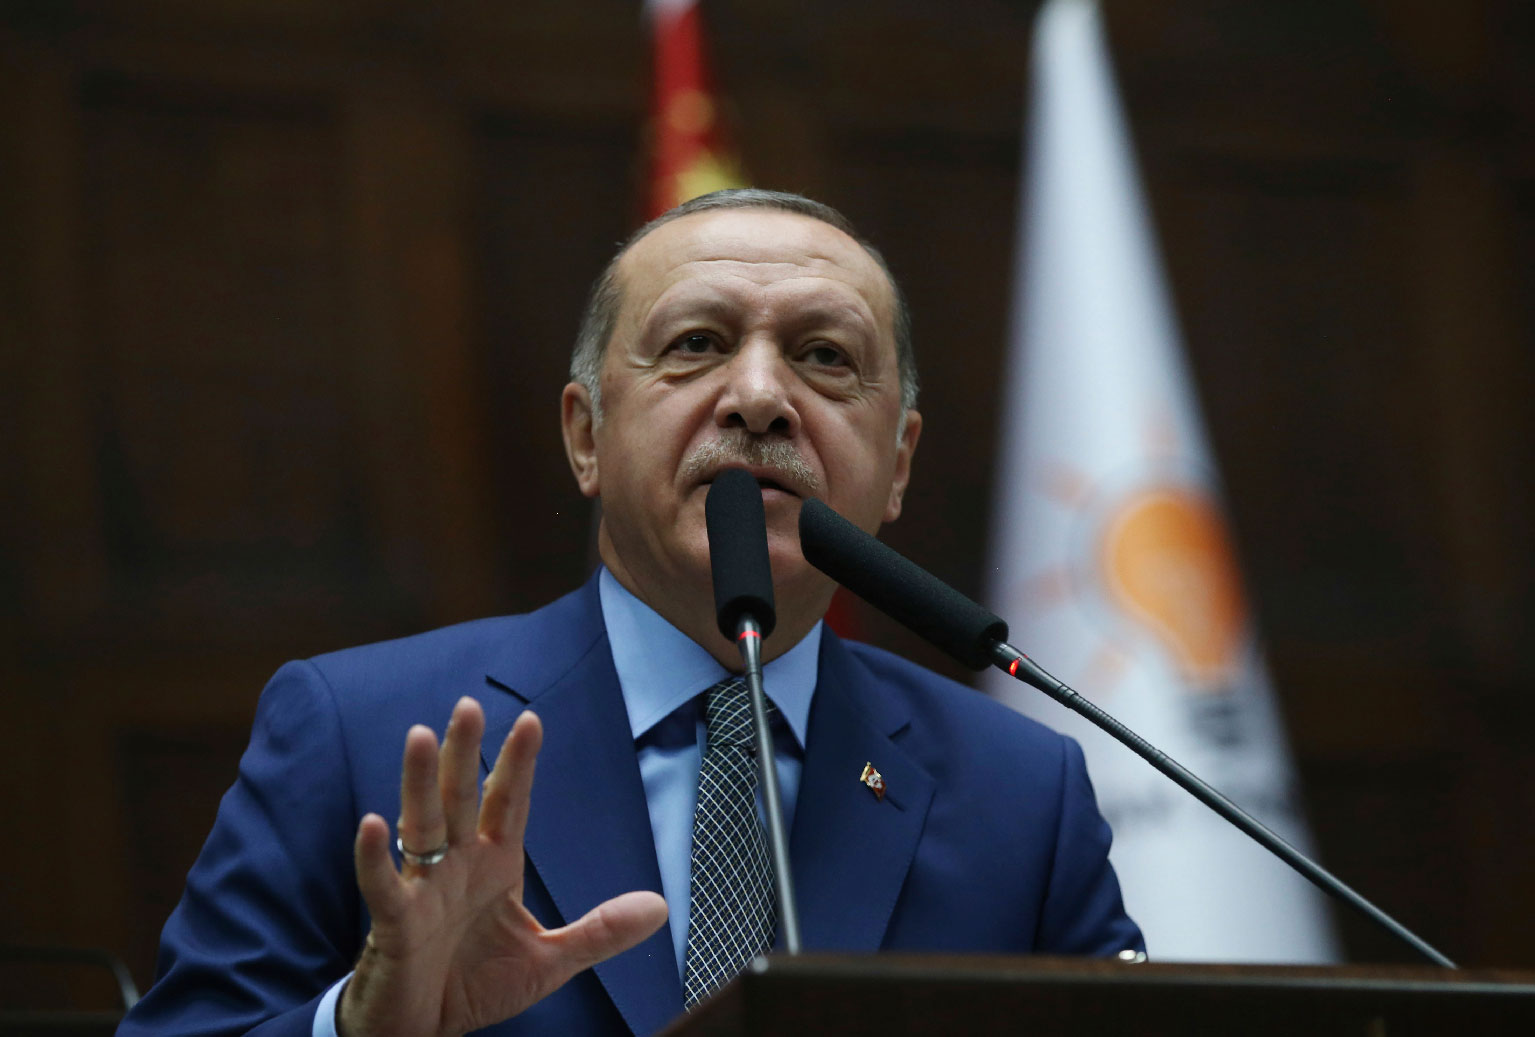 For Erdogan, promoting the Muslim Brotherhood is at the heart of this power struggle.